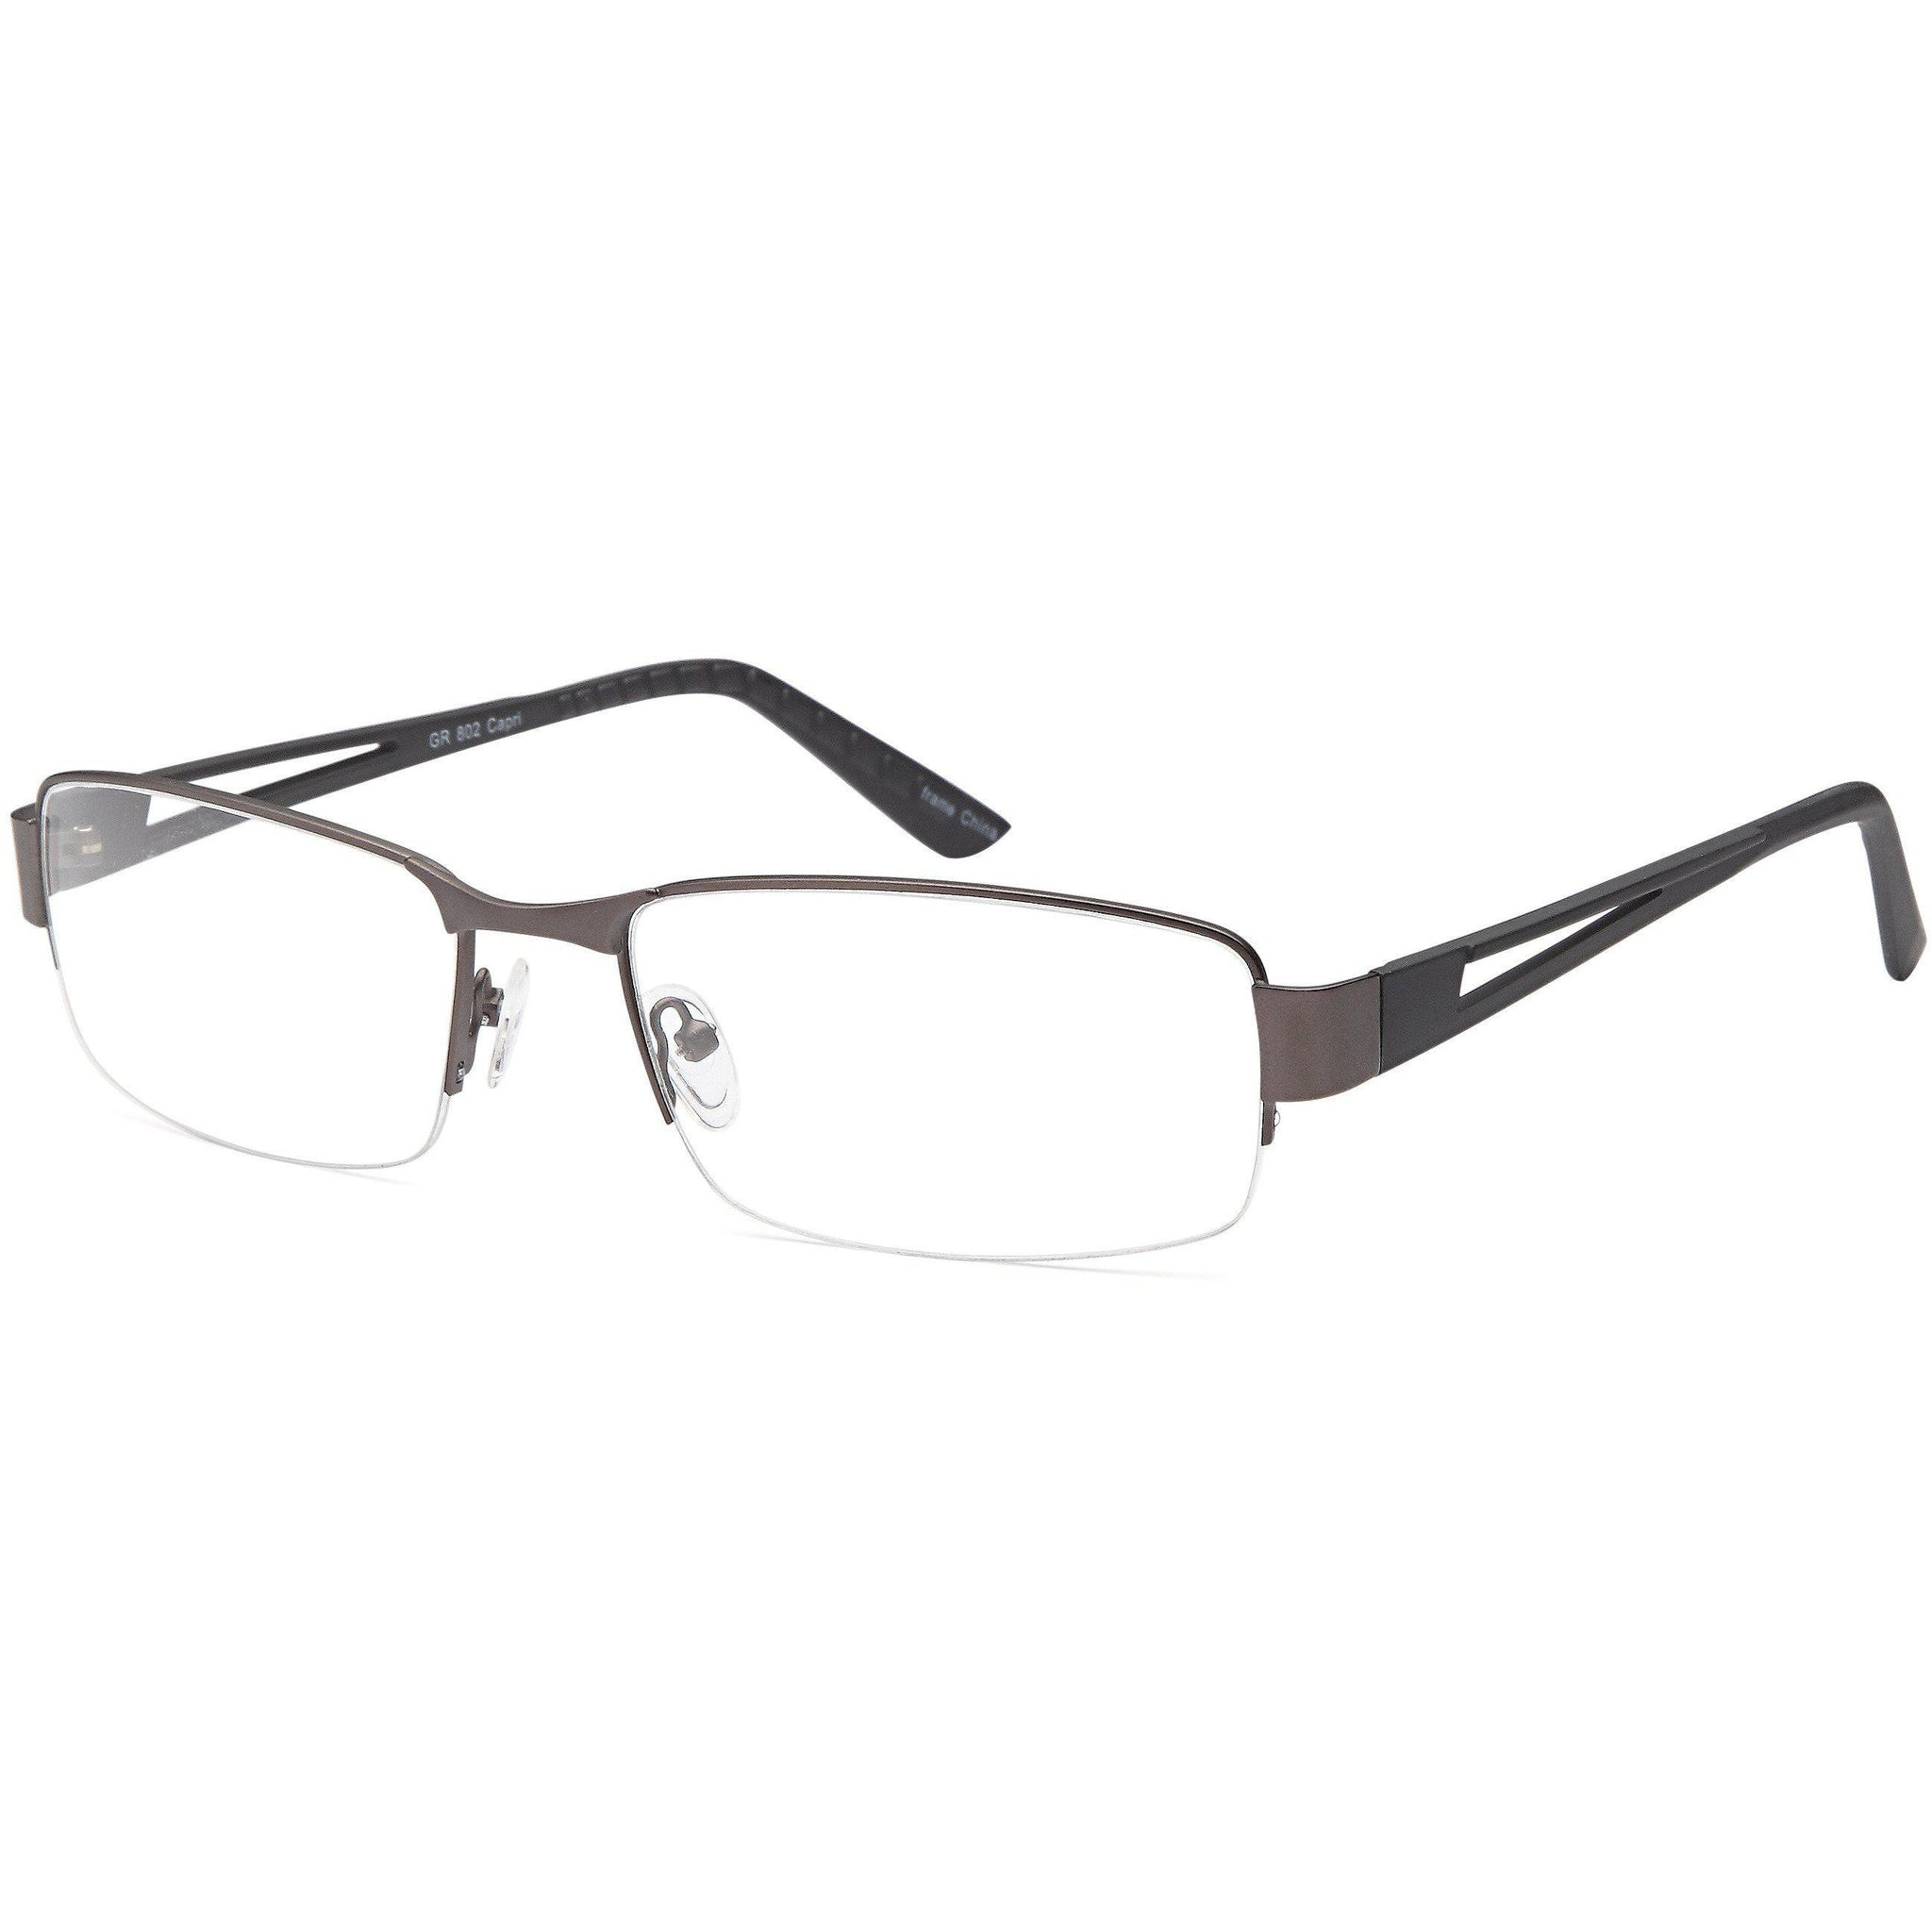 SizeUp Prescription Glasses GR 802 Eyeglasses Frames